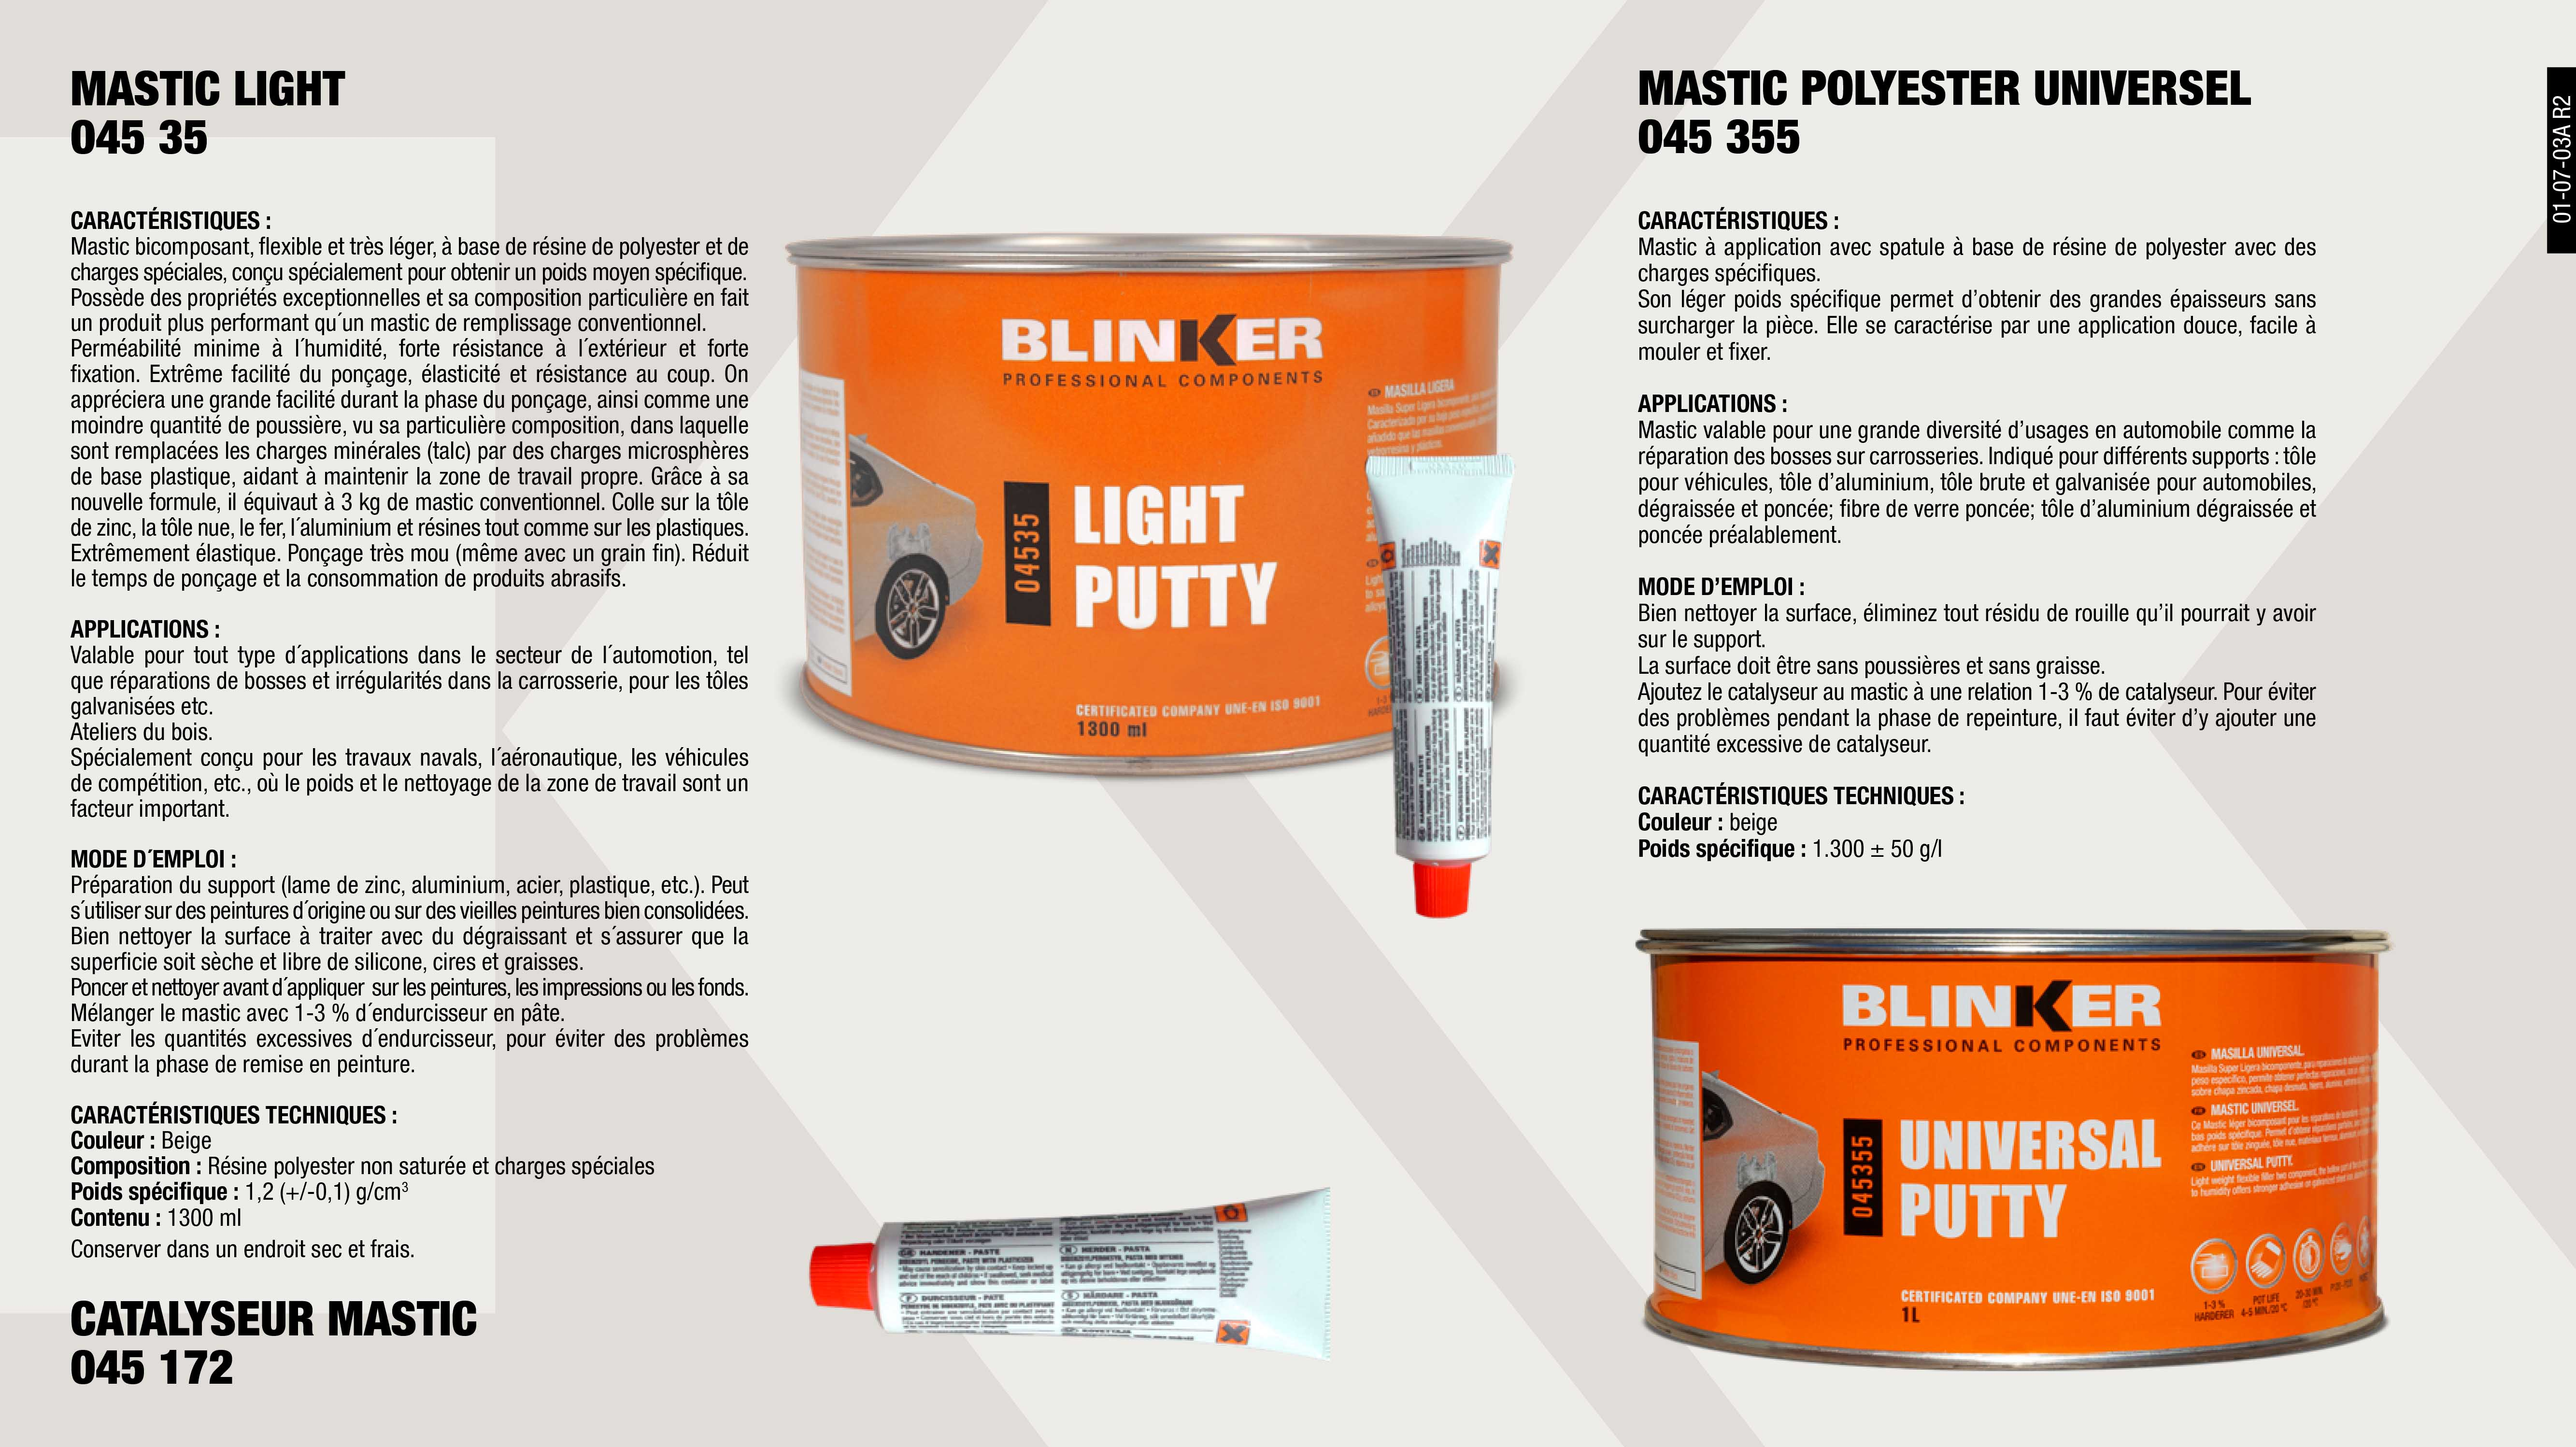 CATALISEUR MASTIC                                           ,  									MASTIC POLYESTER UNIVERSEL LEGER 1350G/1L                   ,  									MASTIC LIGHT 1300 ML                                        ,